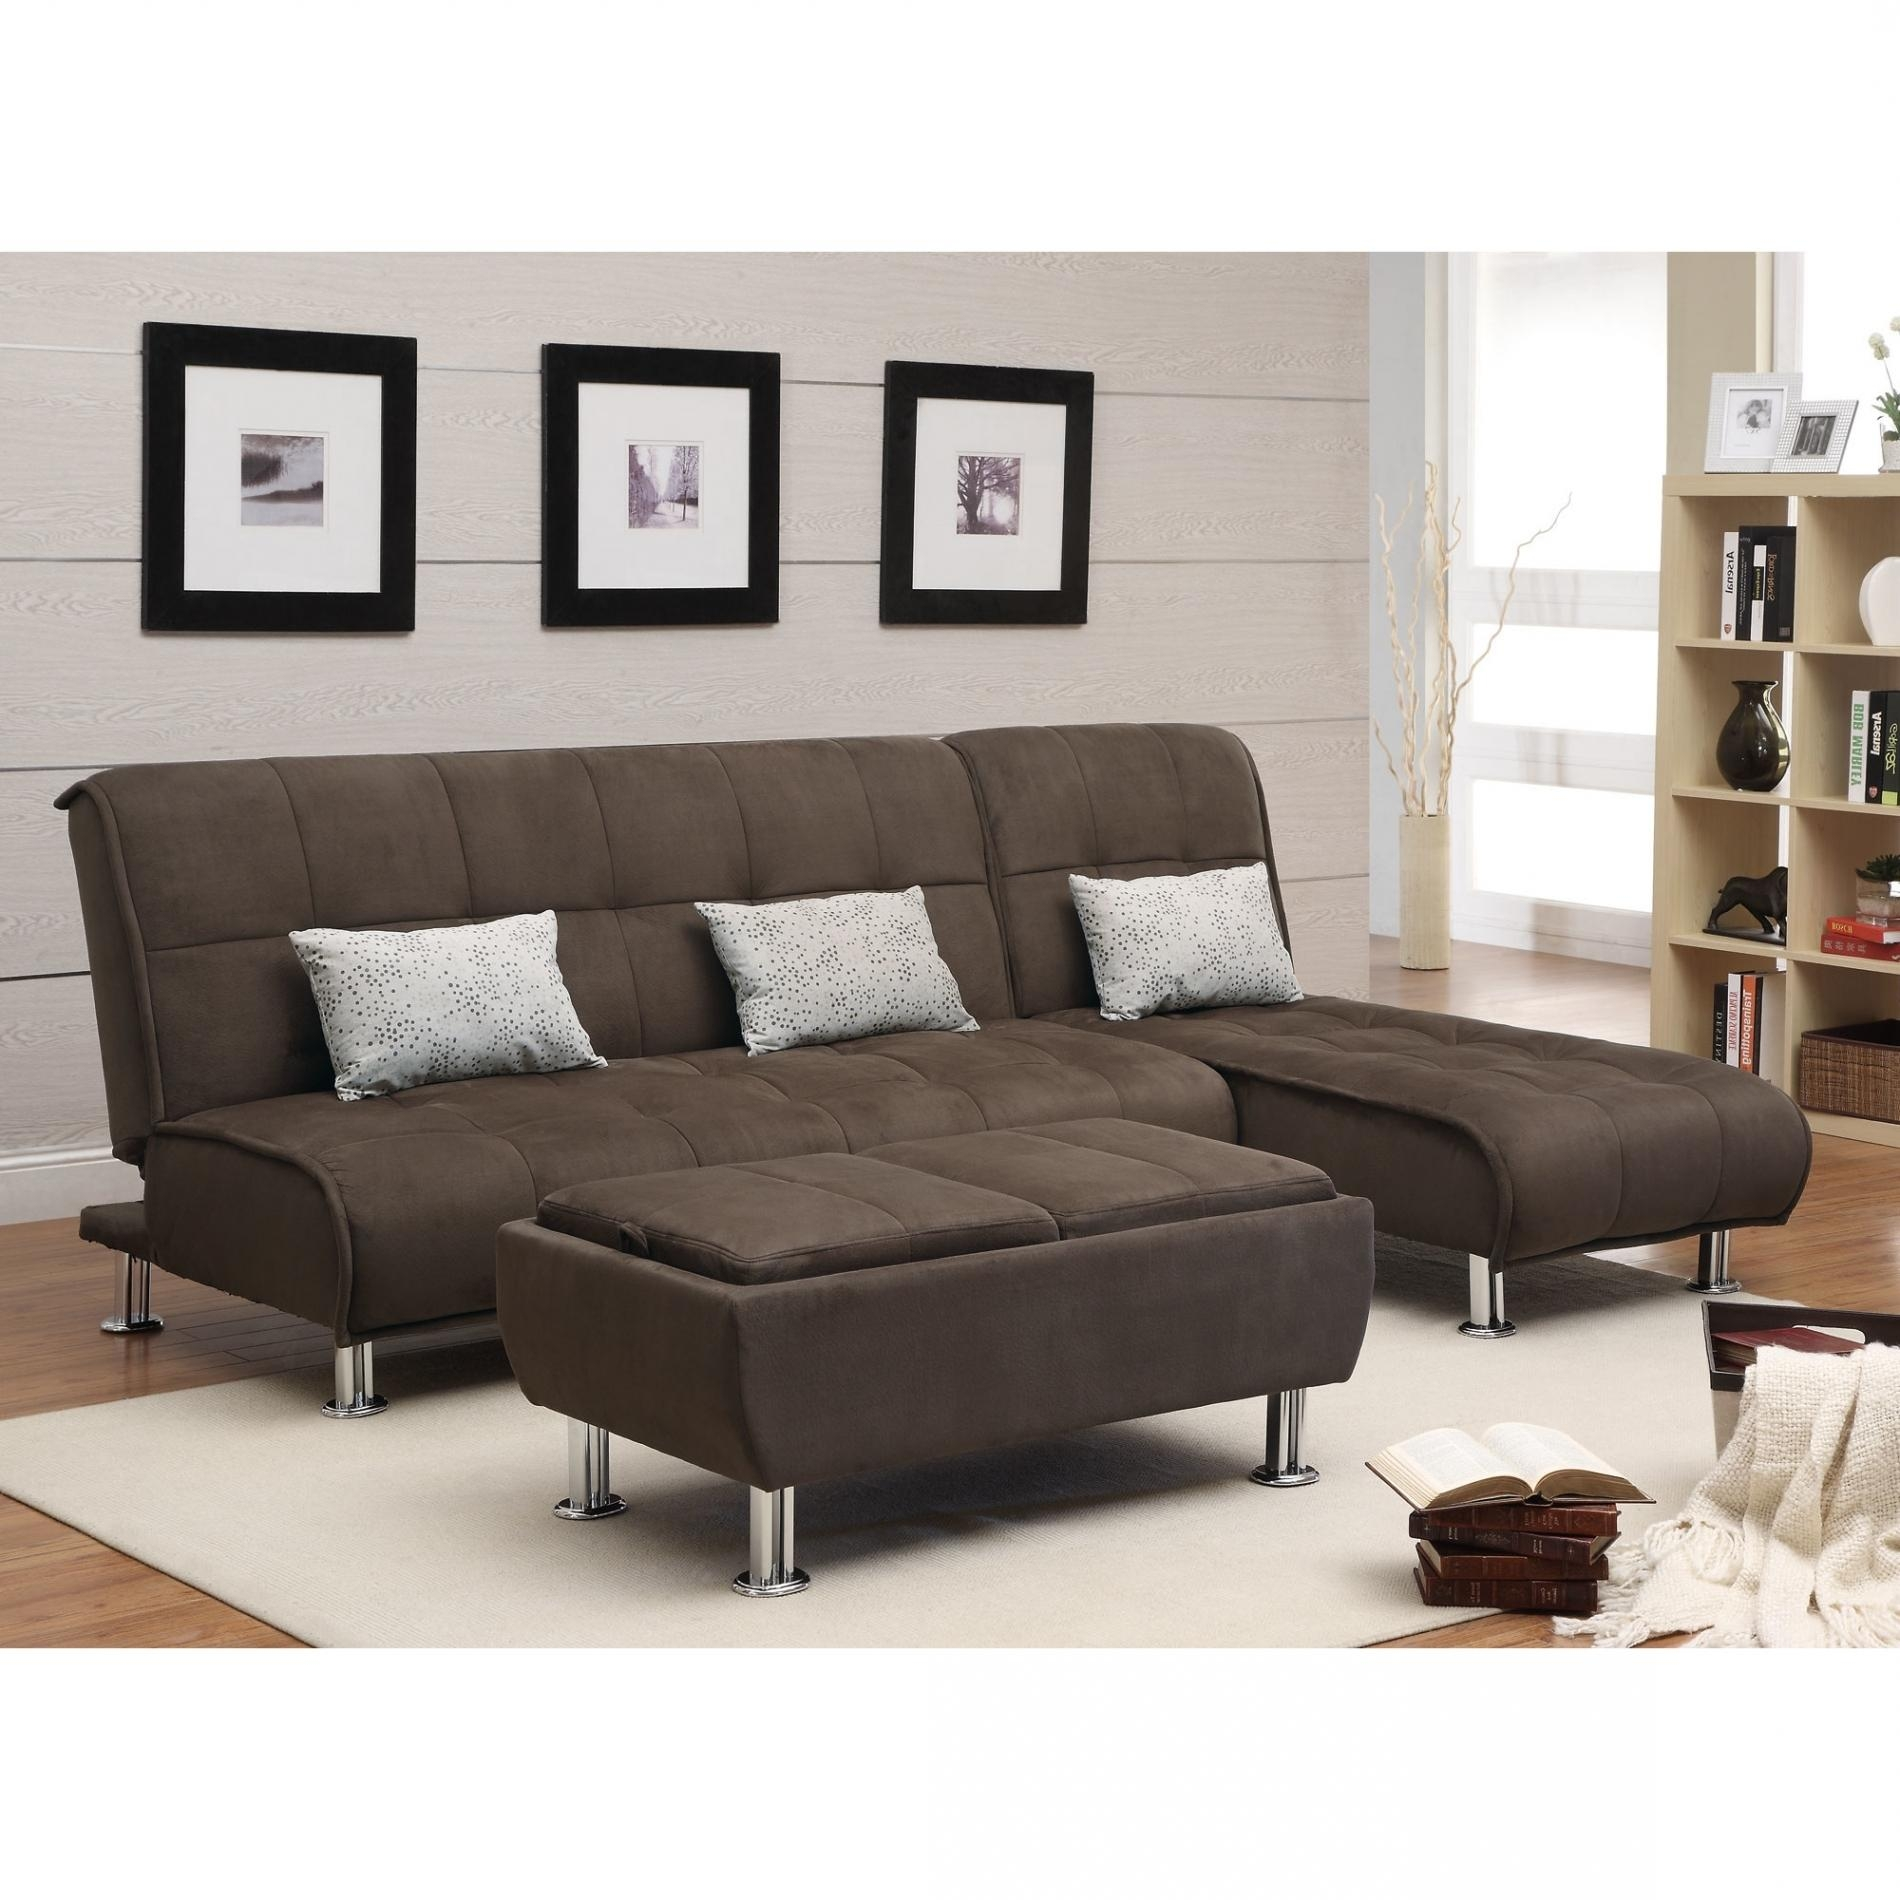 Our Most Comfortable Sleeper Sofa – Room & Board Regarding New Intended For Room And Board Comfort Sleepers (View 2 of 20)